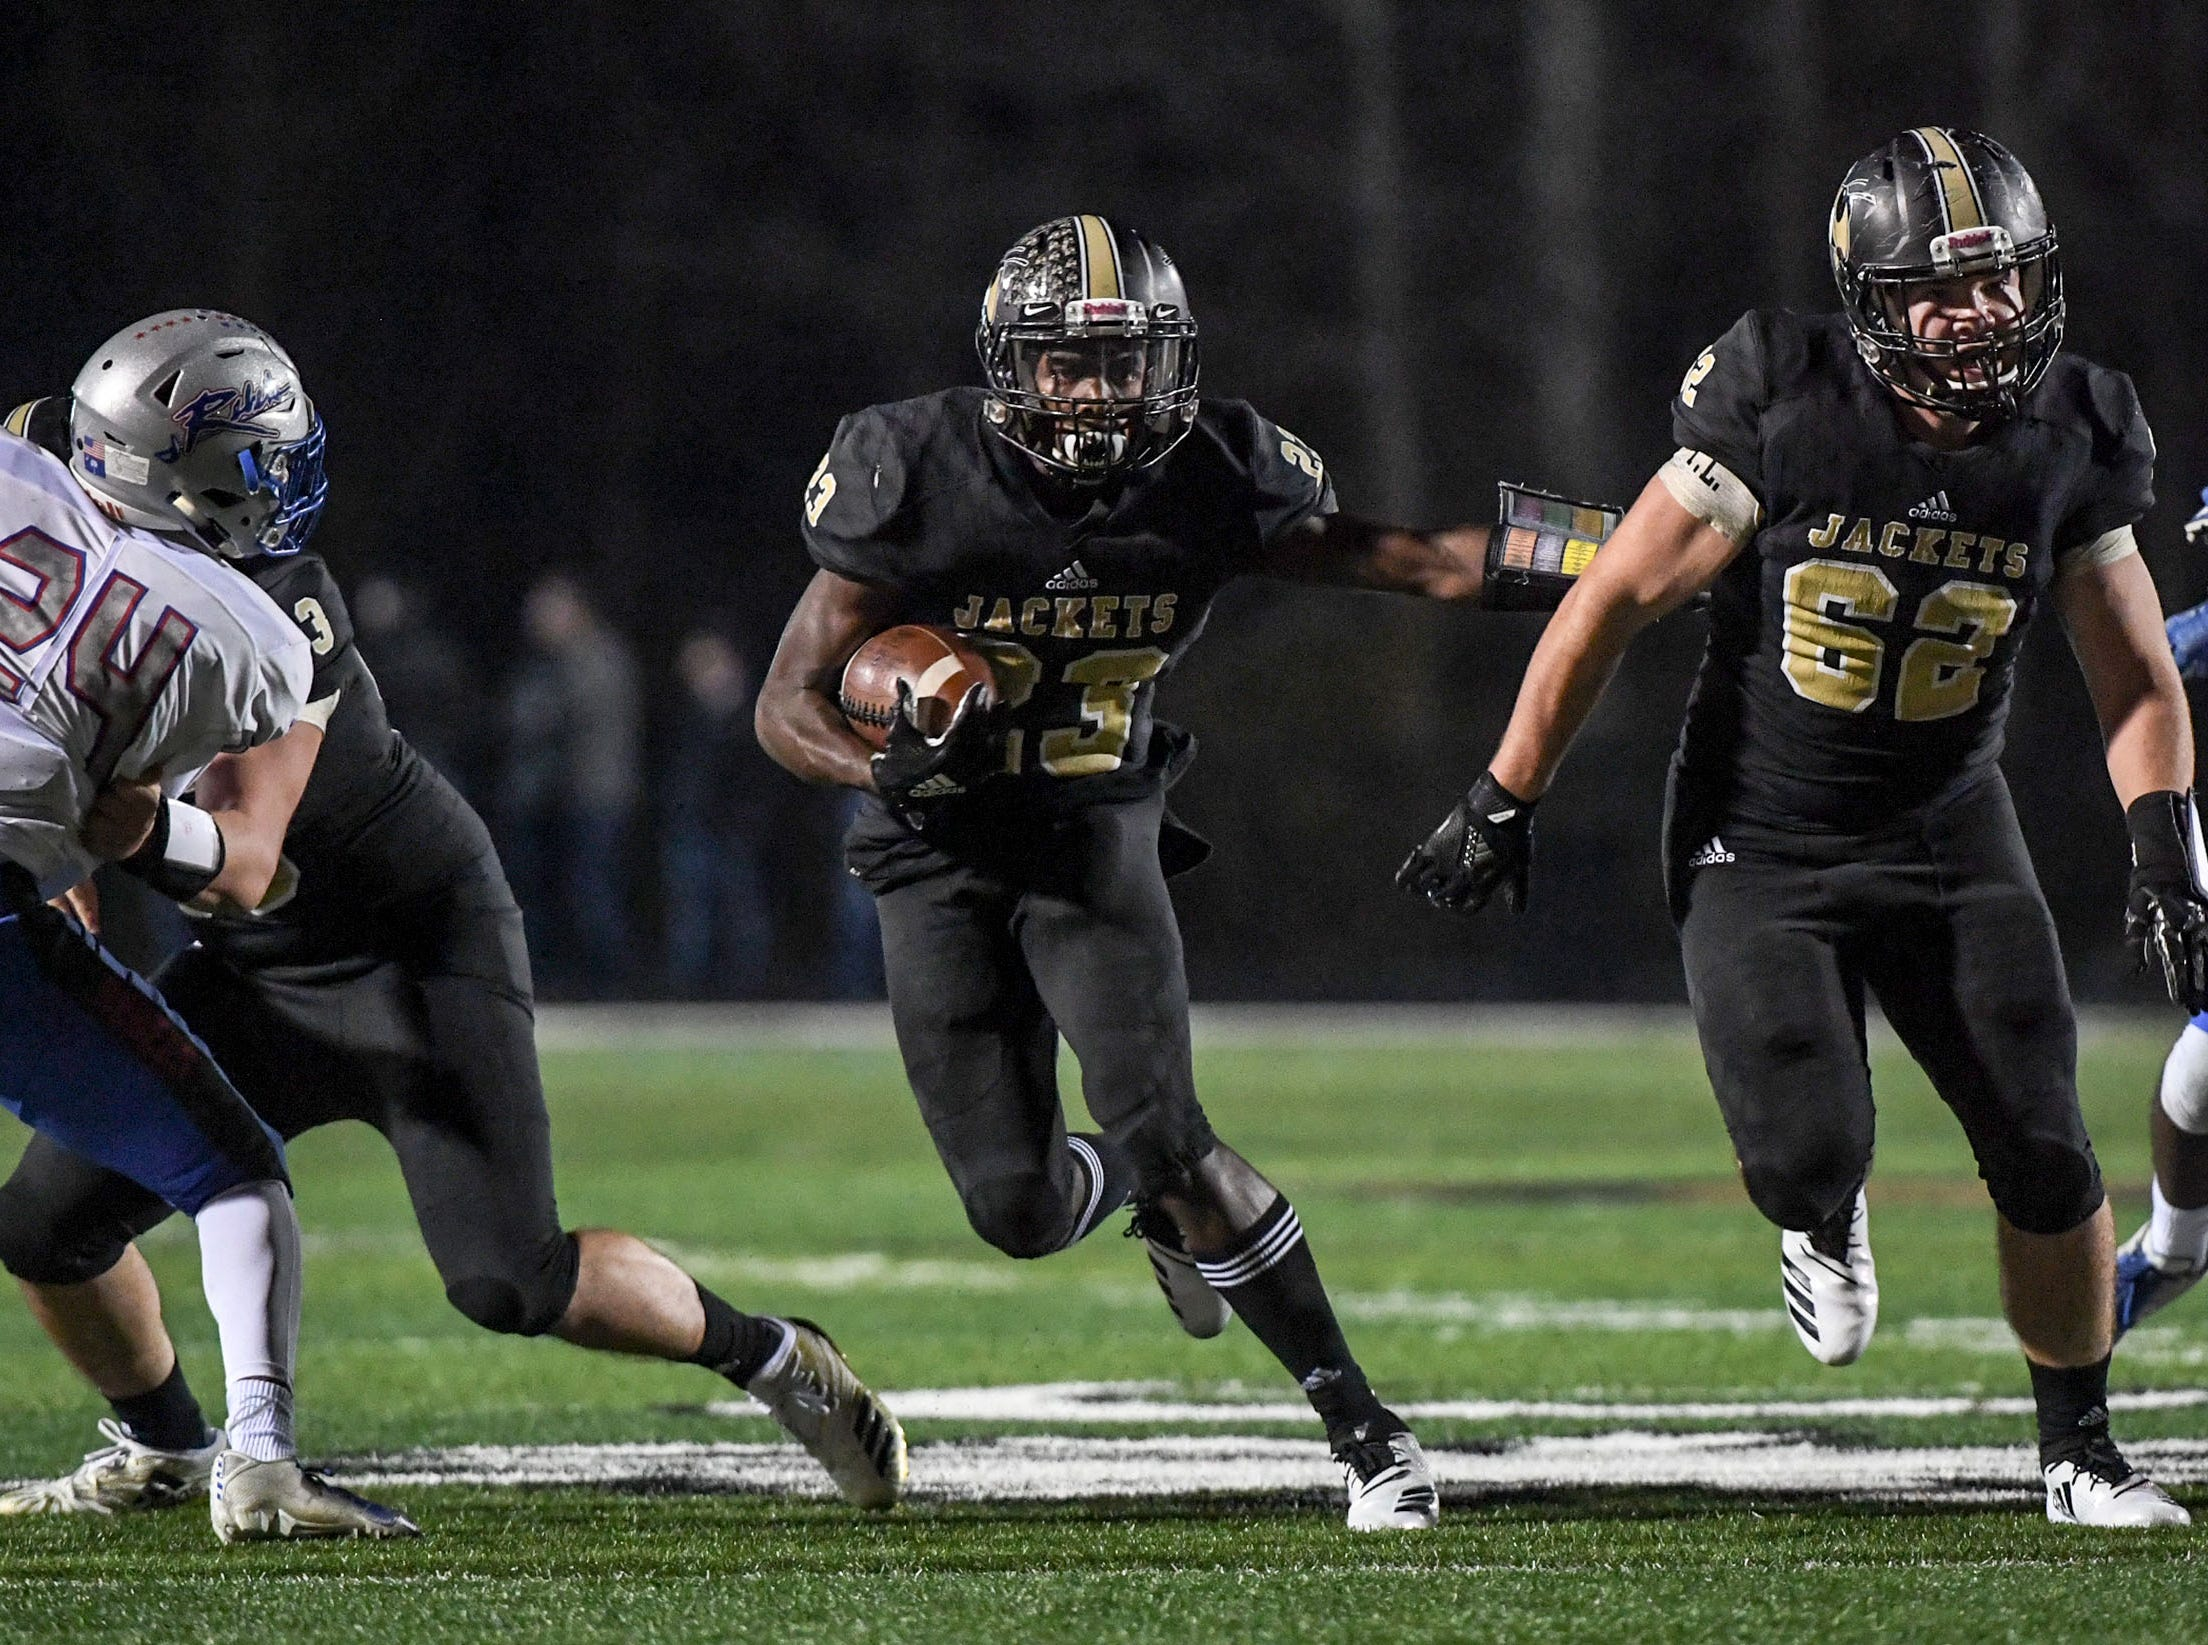 TL Hanna senior Isaiah Norris (23) runs near TL Hanna senior Mac Malone (62) during the first quarter of the Class AAAAA state playoffs at TL Hanna High School in Anderson on Friday, November 30, 2018.